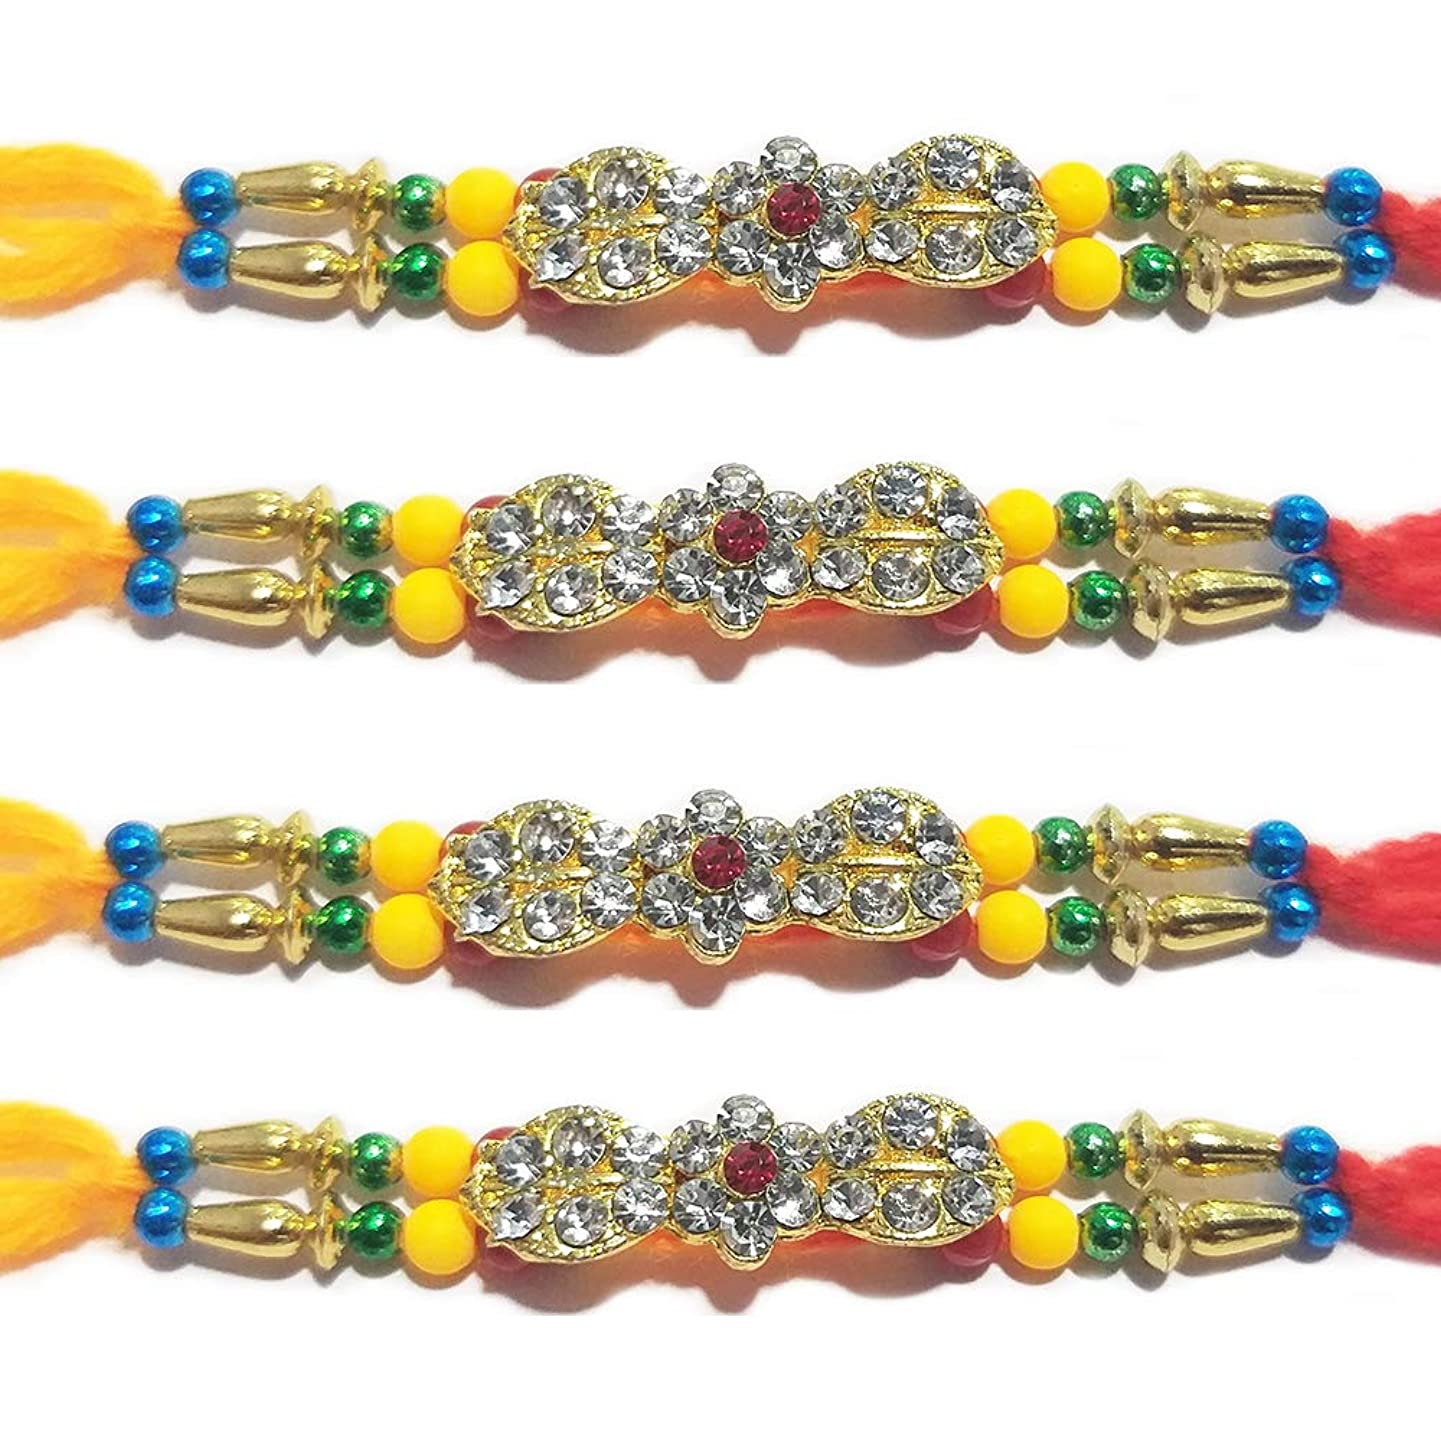 IndiaBigShop Set of 4 Rakhi for Brothers, 24 Stone Studded in Unique Shaped with Colorful Beads Design Rakhi Bracelet, Multi Design and Assorted Color